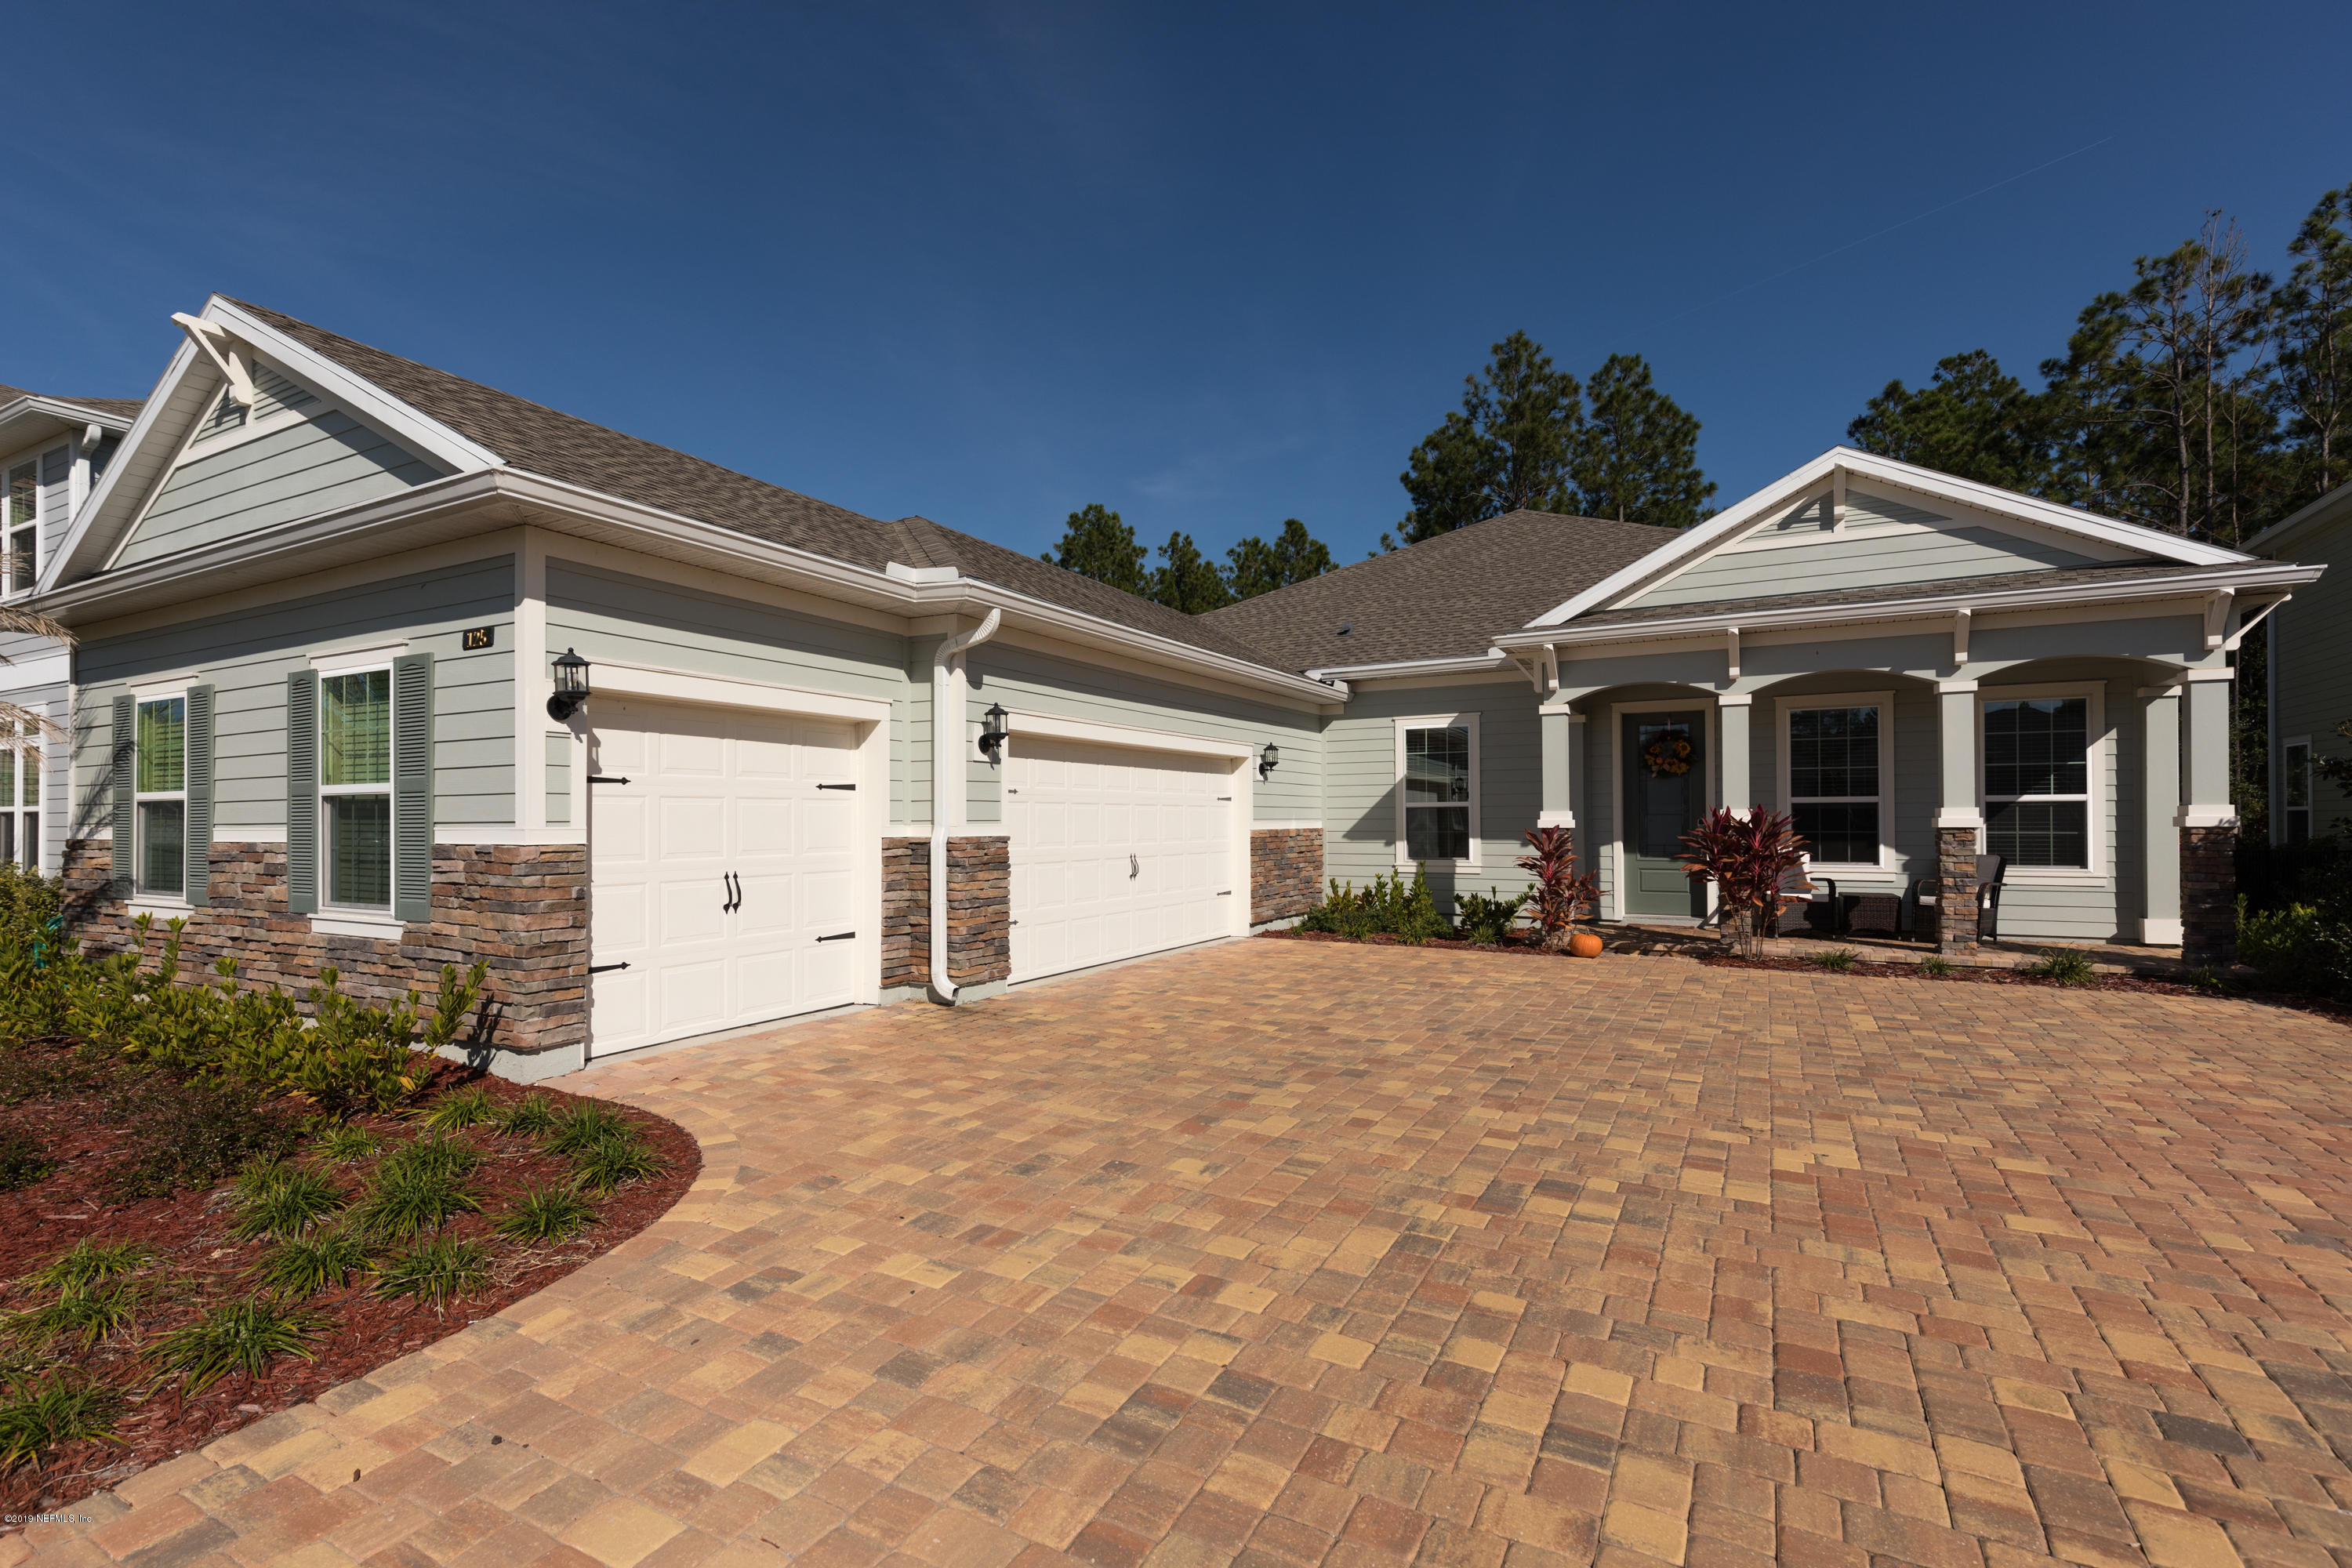 125 SAN TELMO, ST AUGUSTINE, FLORIDA 32095, 5 Bedrooms Bedrooms, ,4 BathroomsBathrooms,Residential,For sale,SAN TELMO,1056219